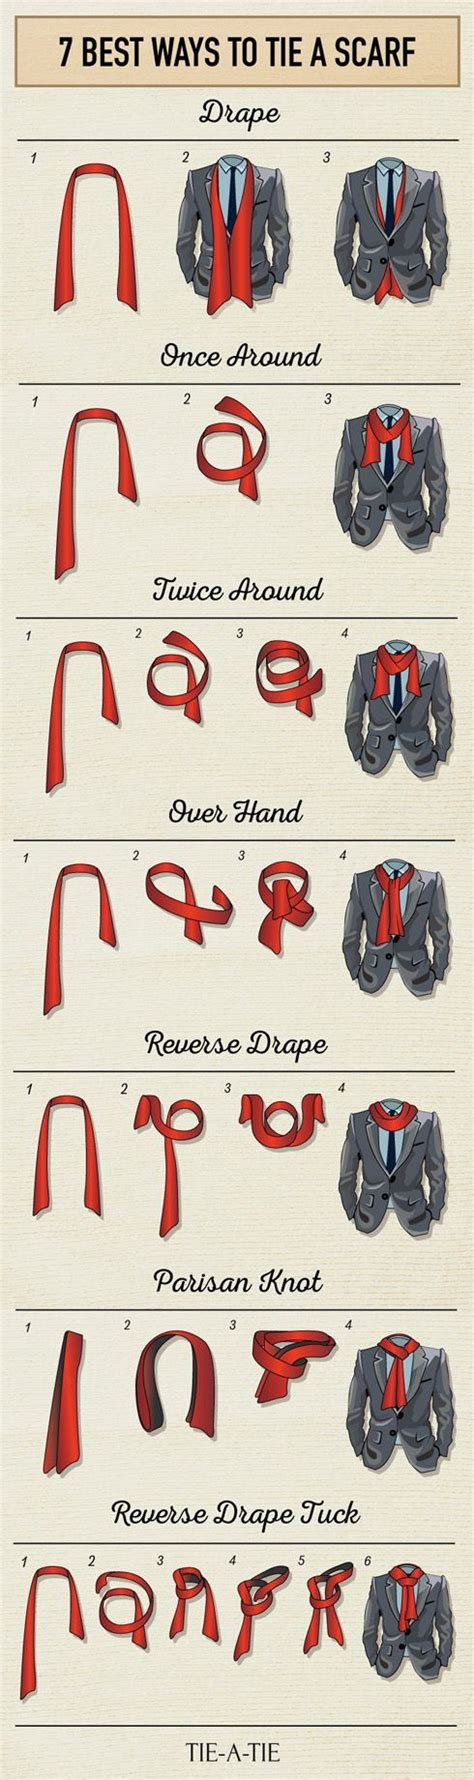 the best way to use a scarf to tie a short haircut with tapered back and sides for black women 7 best ways to tie a scarf for men drones wear a scarf